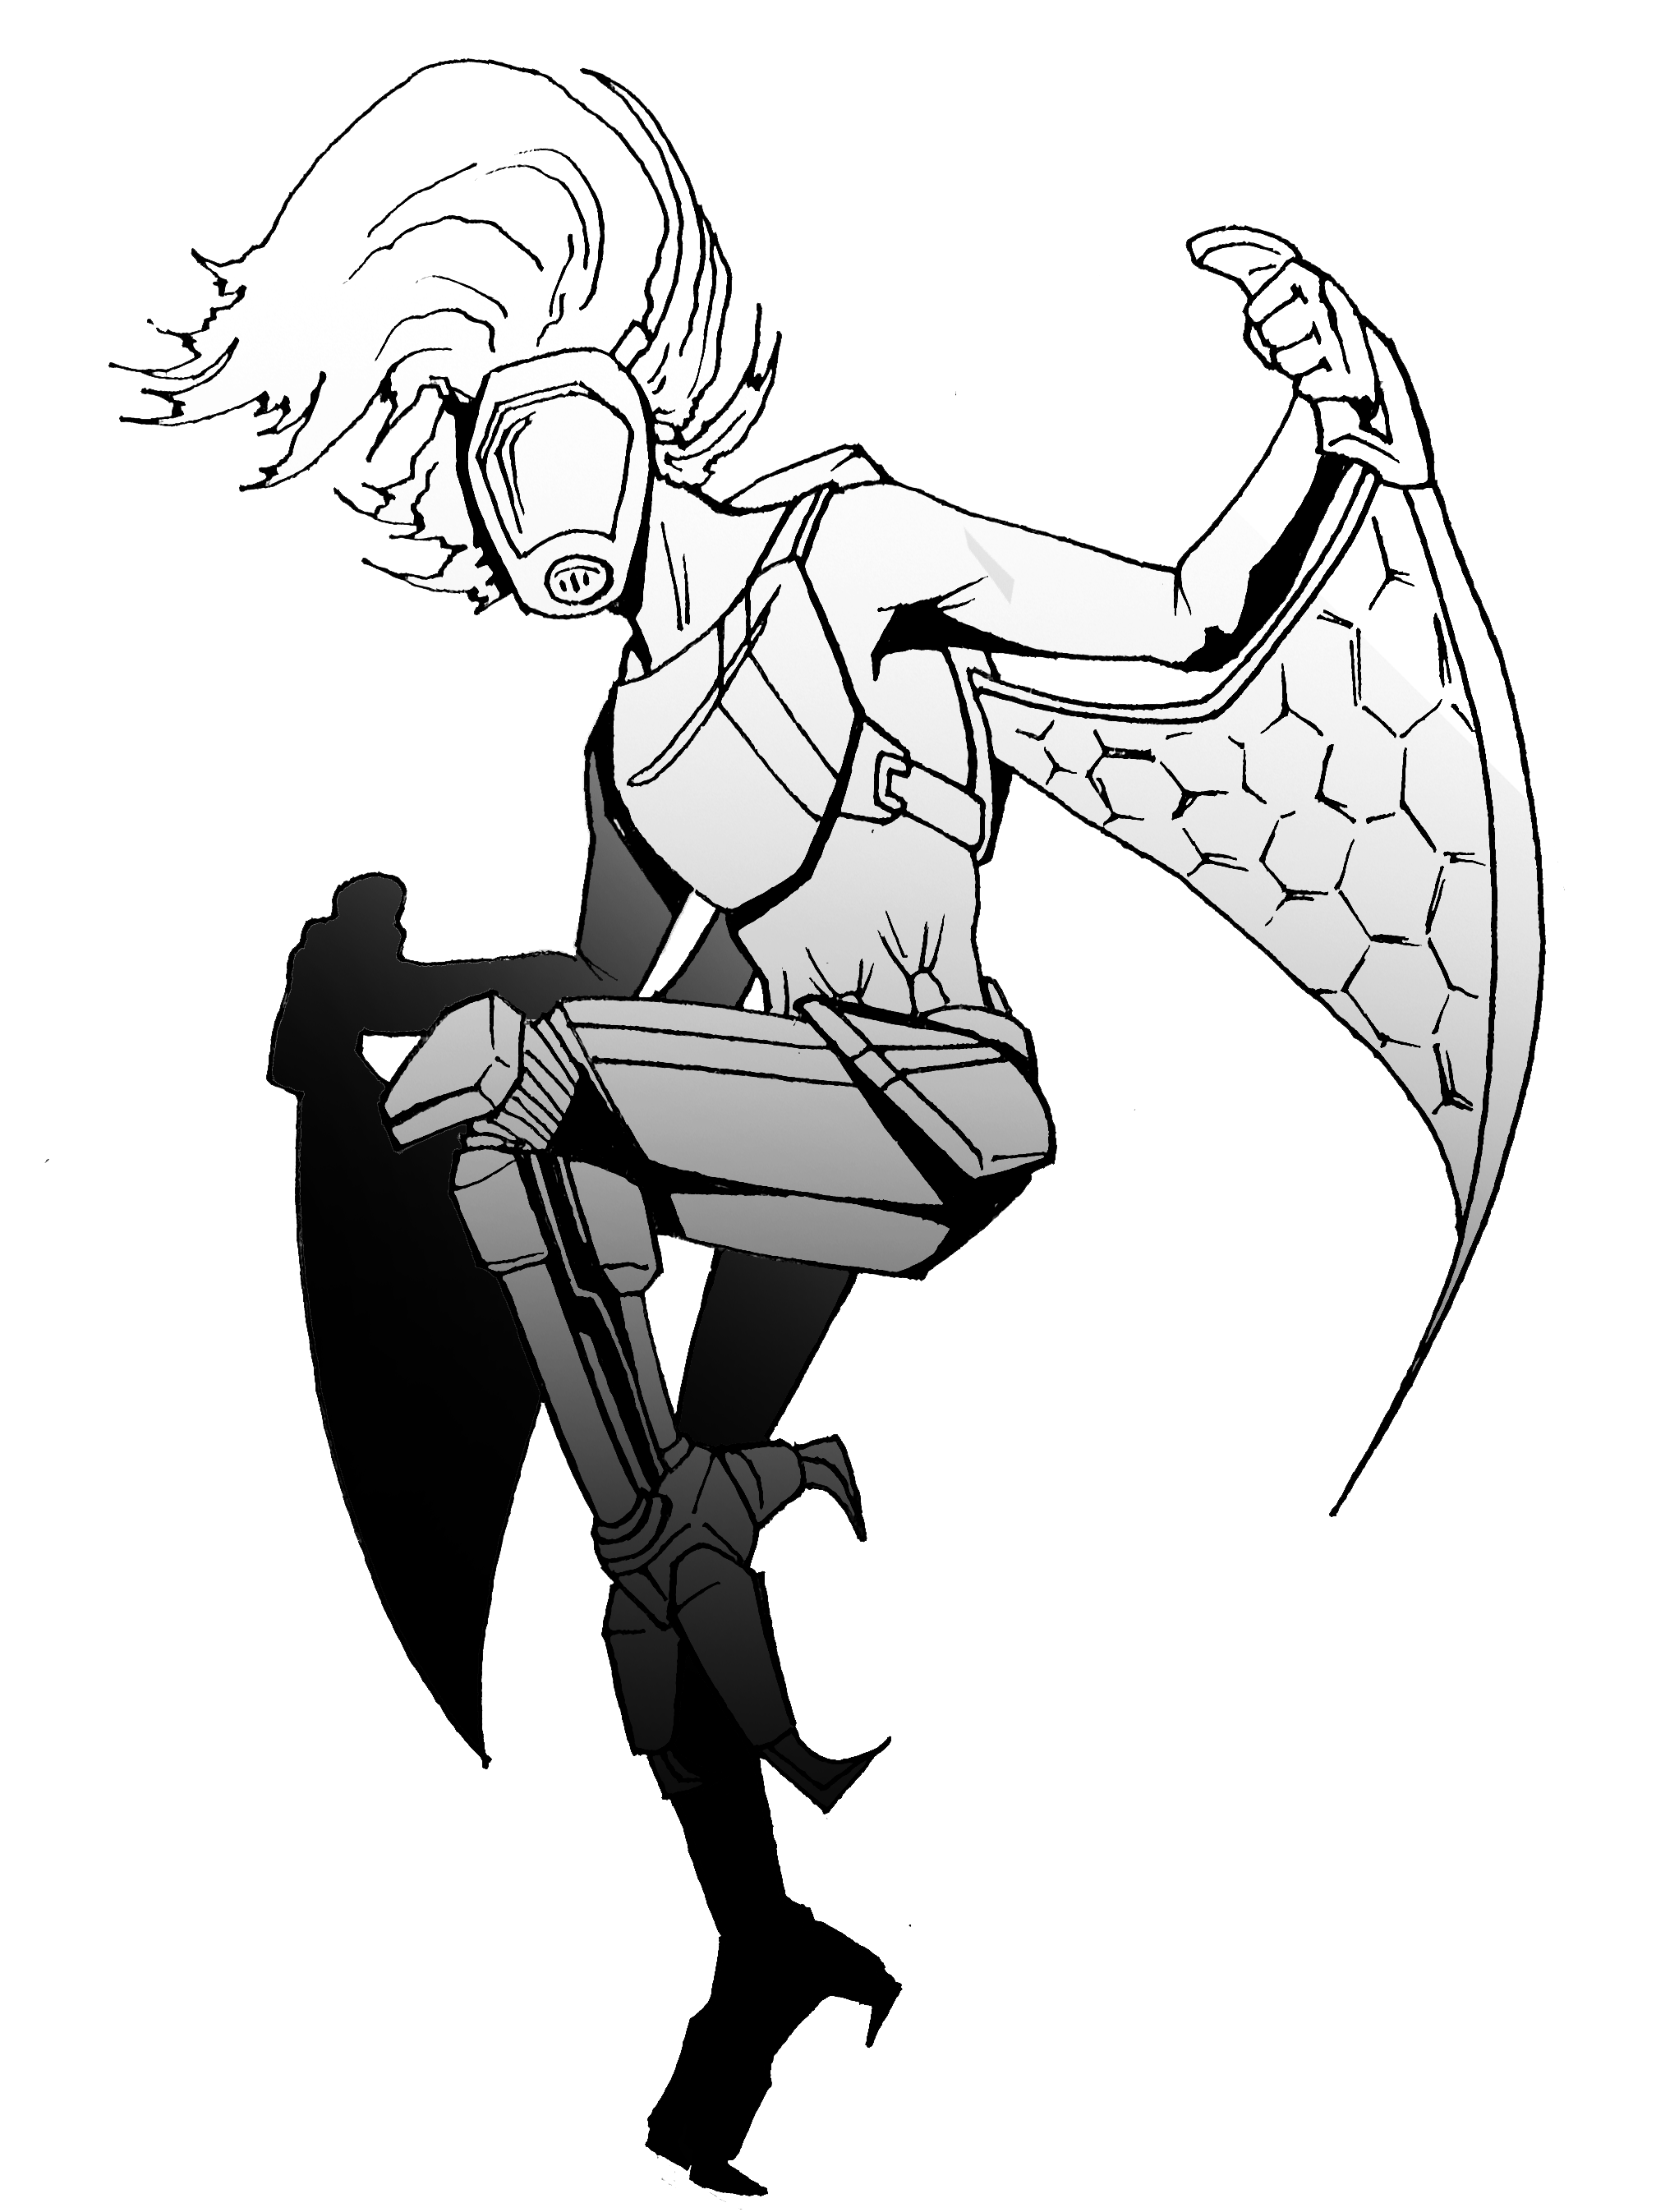 Harpy drawing. Oc friends and i